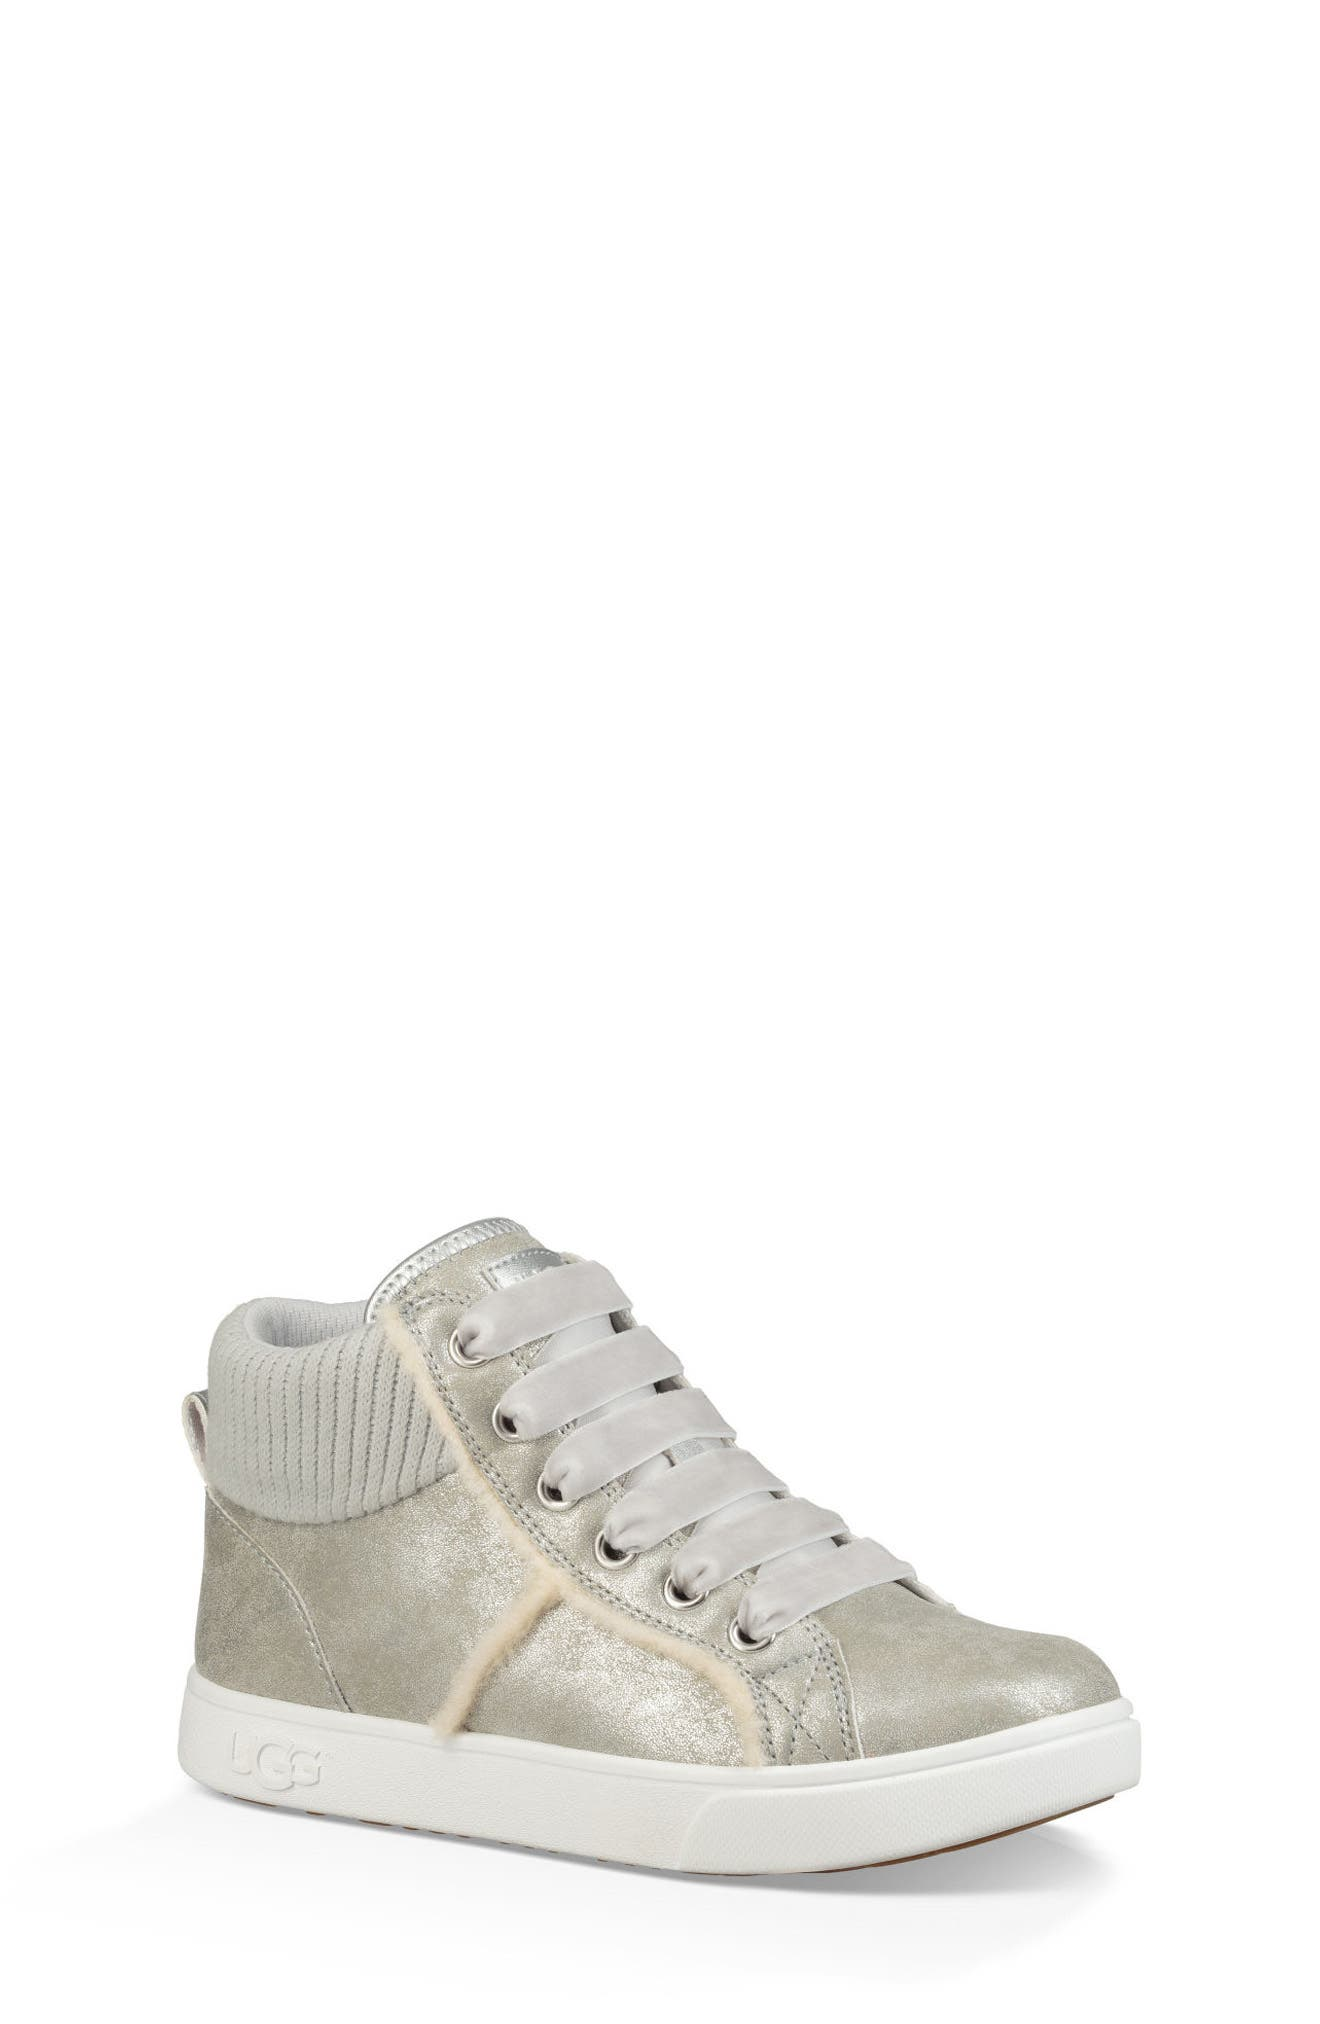 UGG<SUP>®</SUP>, Addie High Top Sneaker, Main thumbnail 1, color, SILVER